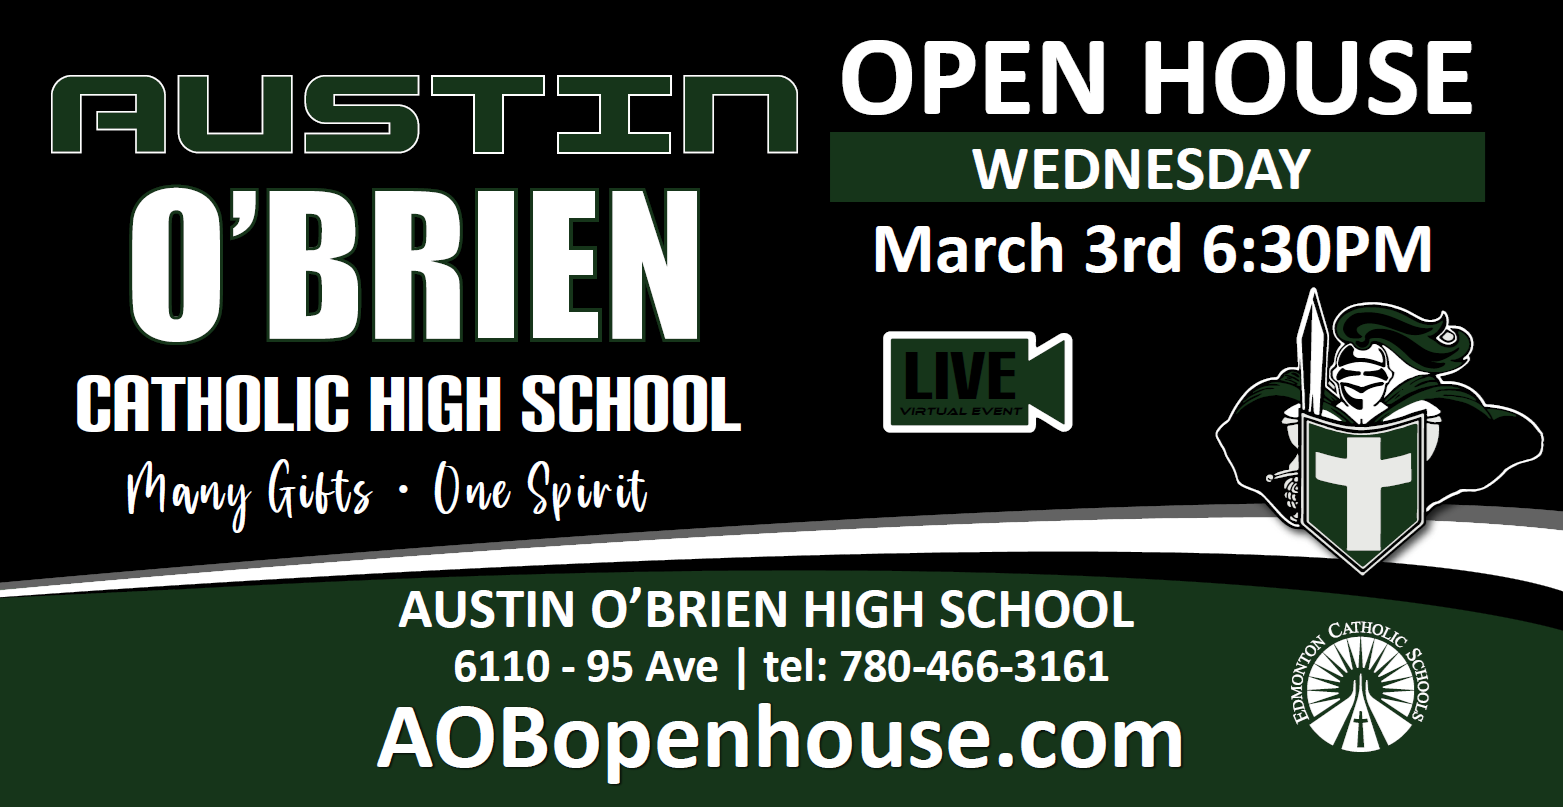 open house 2021 banner.PNG